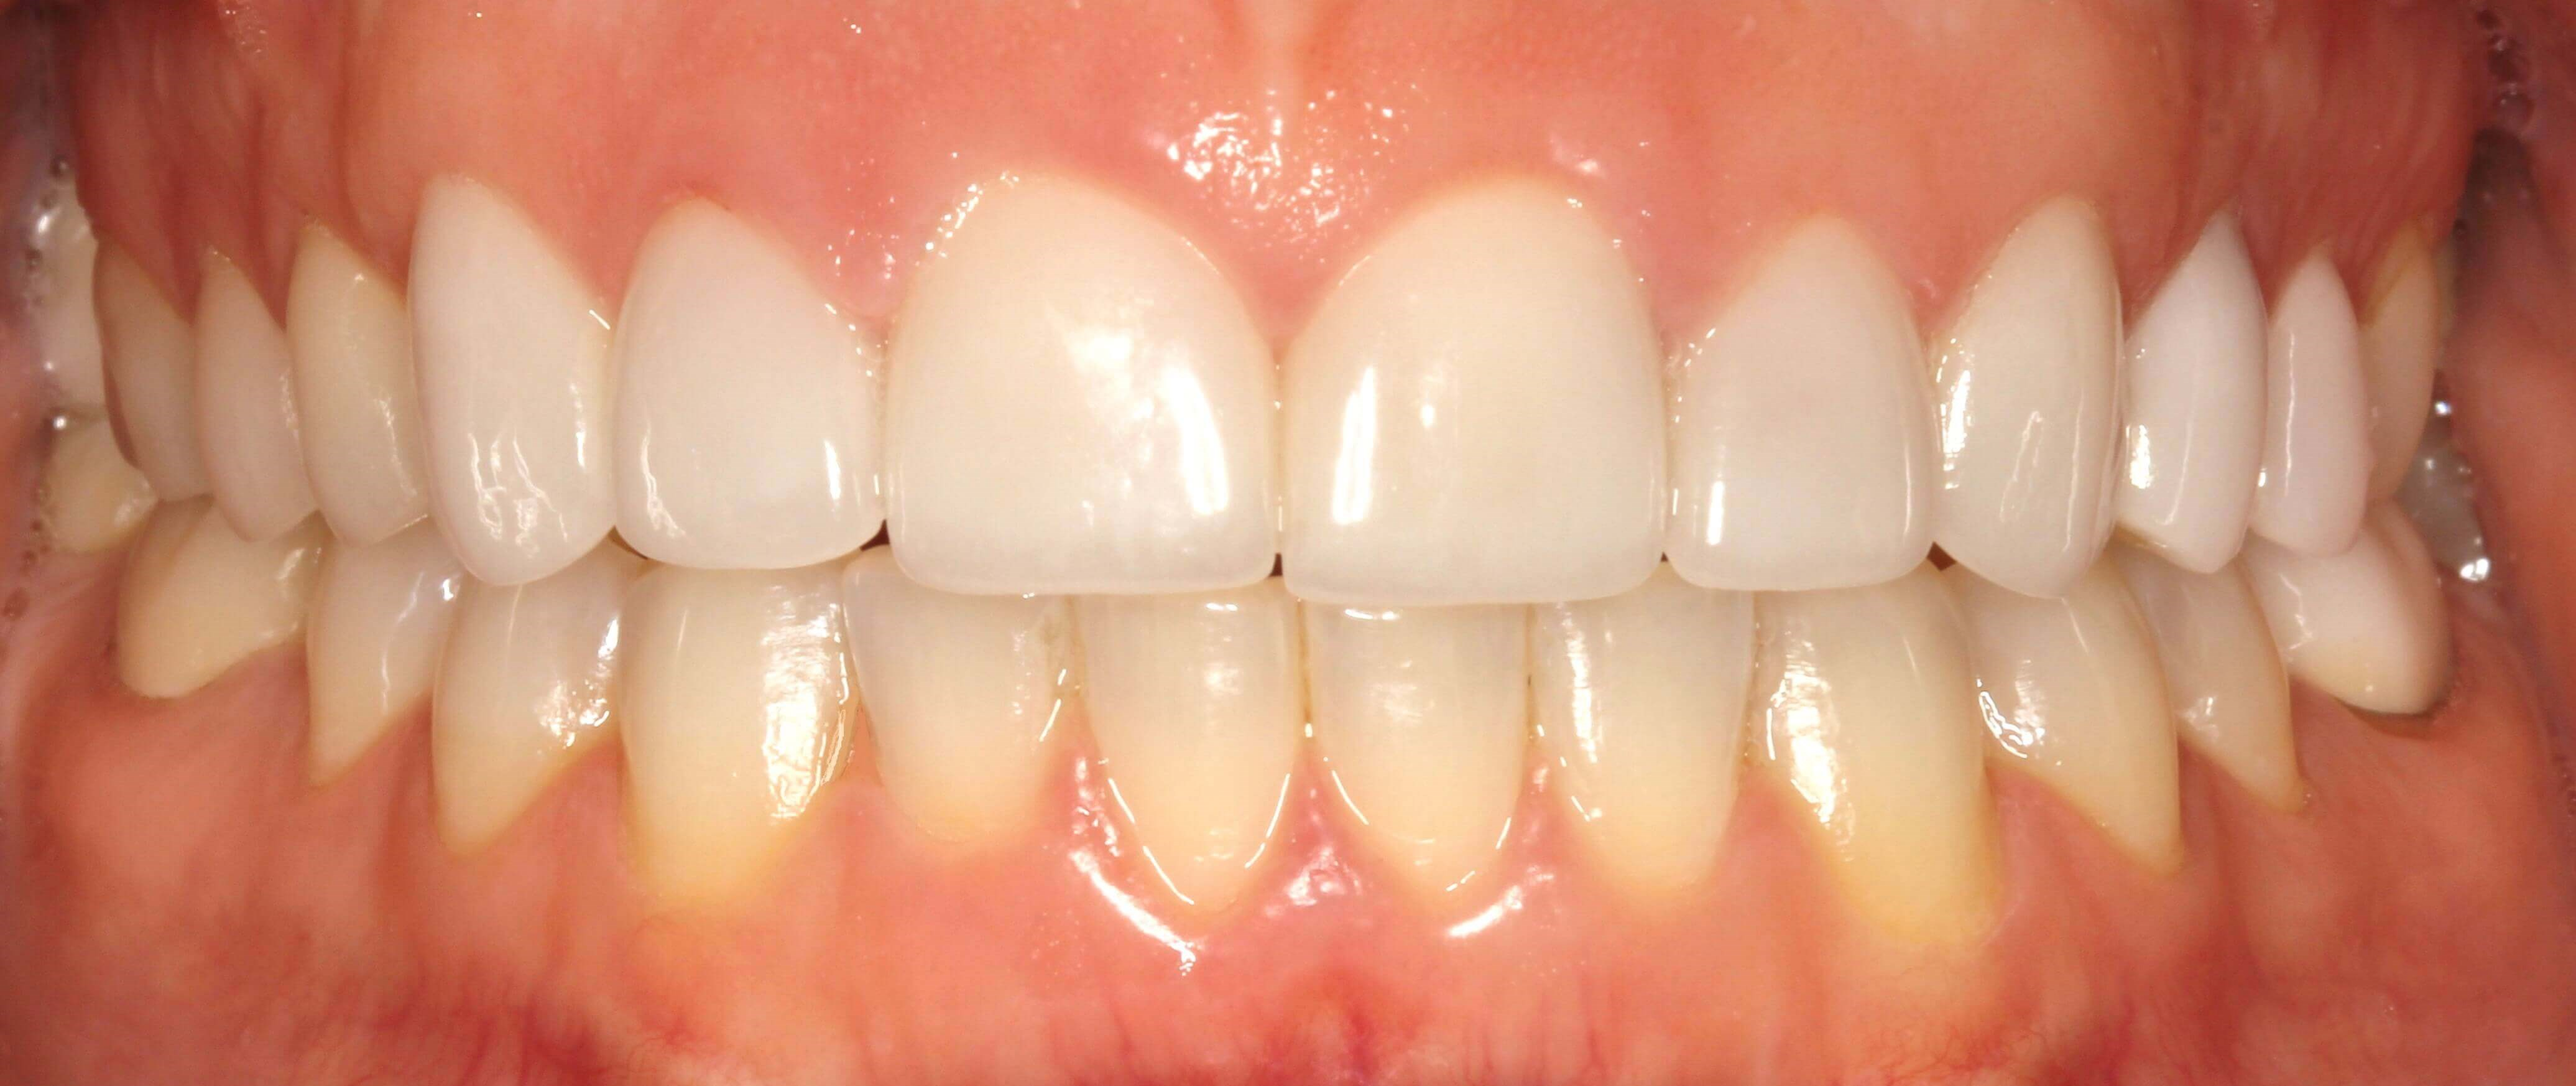 Crown Lengthening and Veneers After